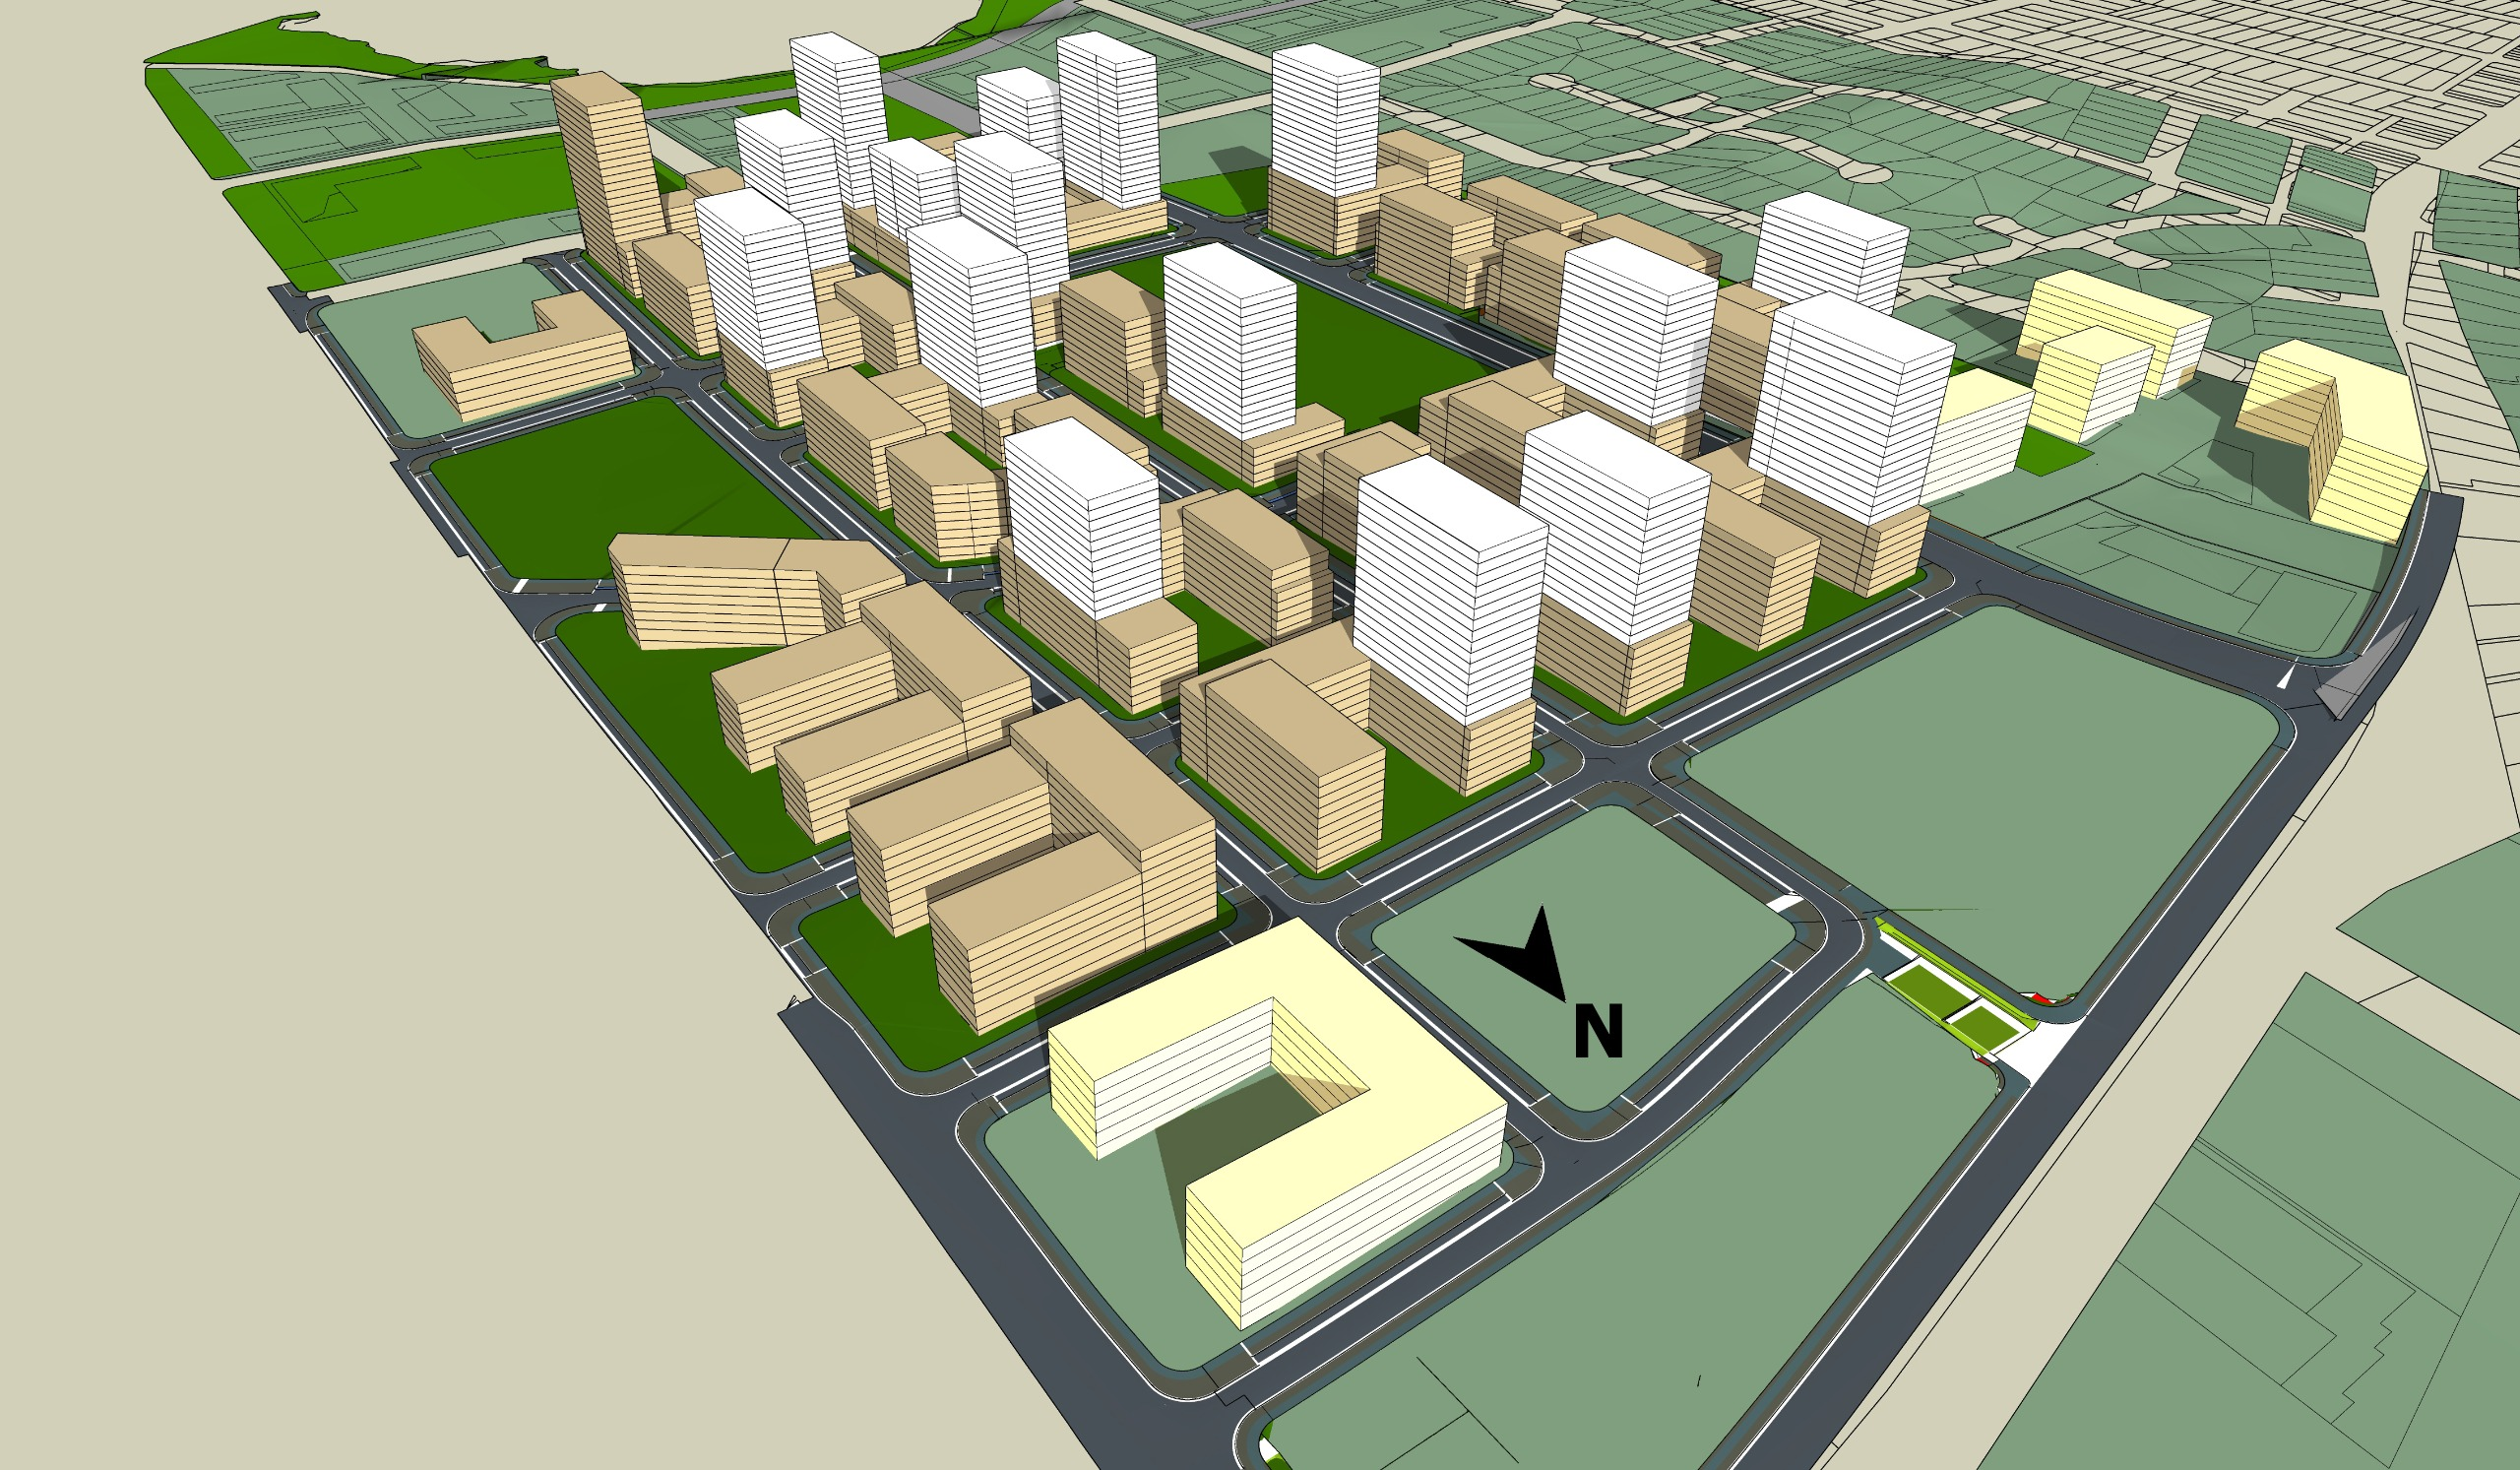 A 3D model depicting size and shadowing of proposed building.